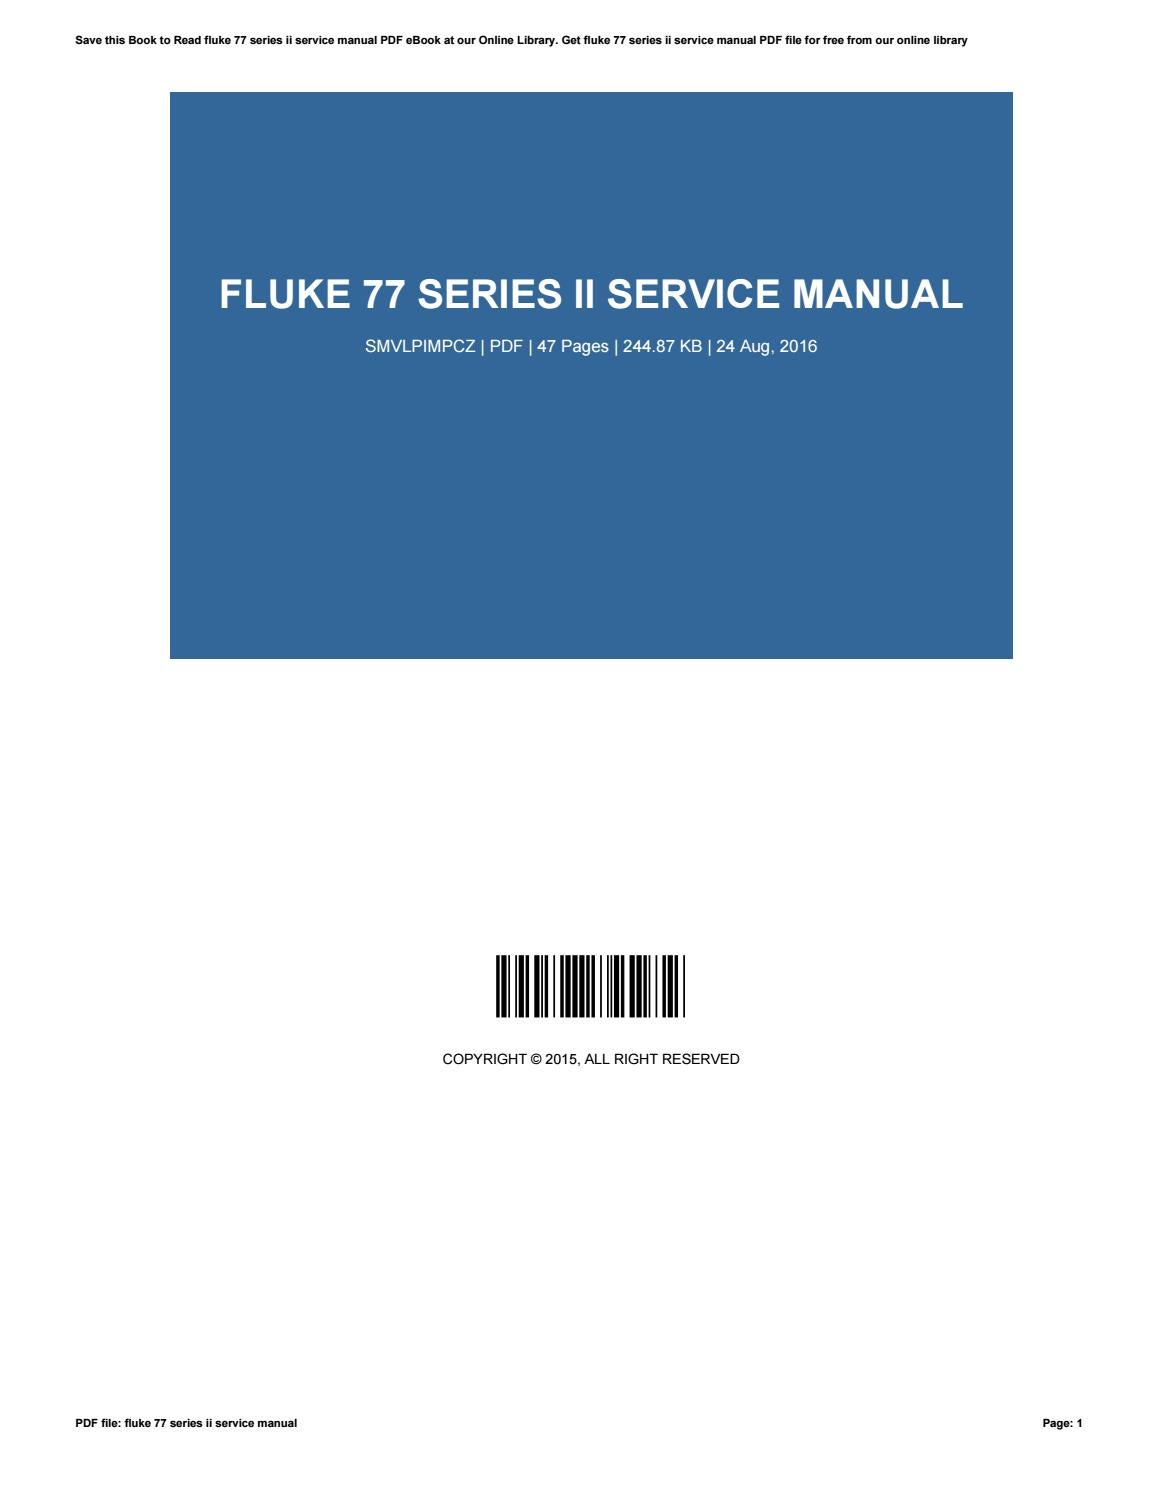 Mazda 3 Service Manual: Steering Wheel And Column RemovalInstallation Without Advanced Keyless Entry And Push Button Start System